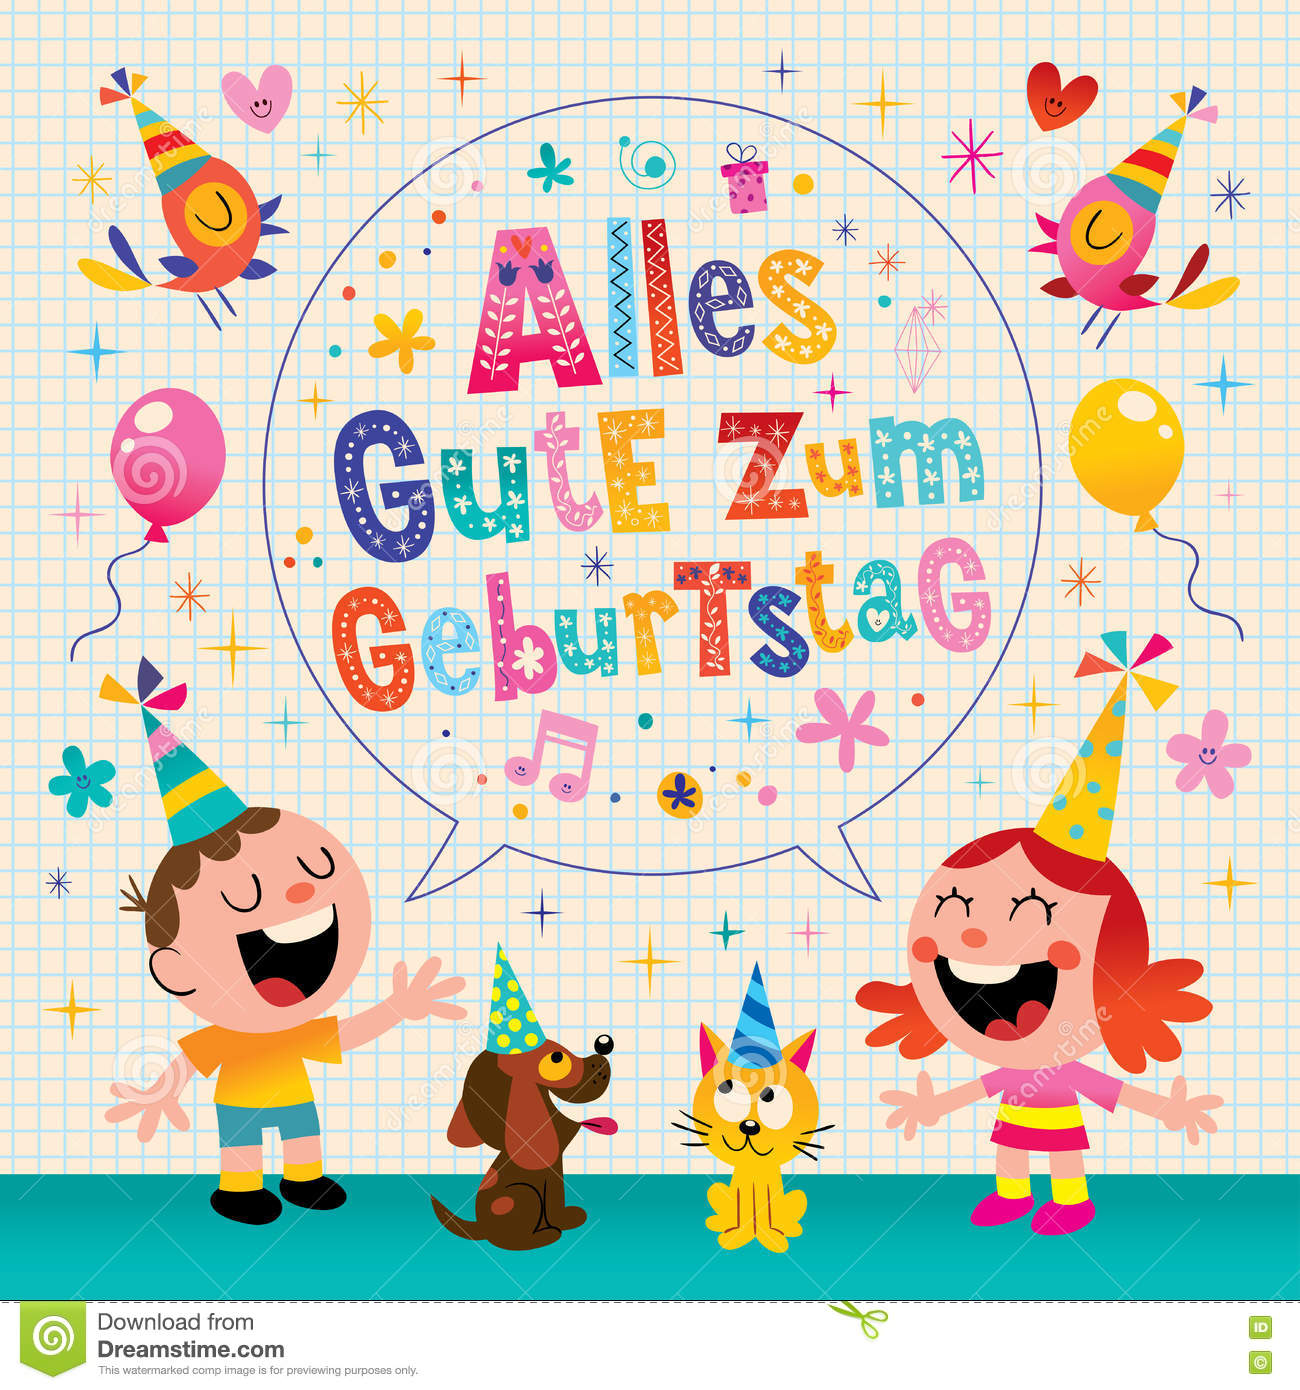 Alles Gute Zum Geburtstag Deutsch German Happy Birthday Greeting Card With Little Boy And Girl Pets Puppy Kitten